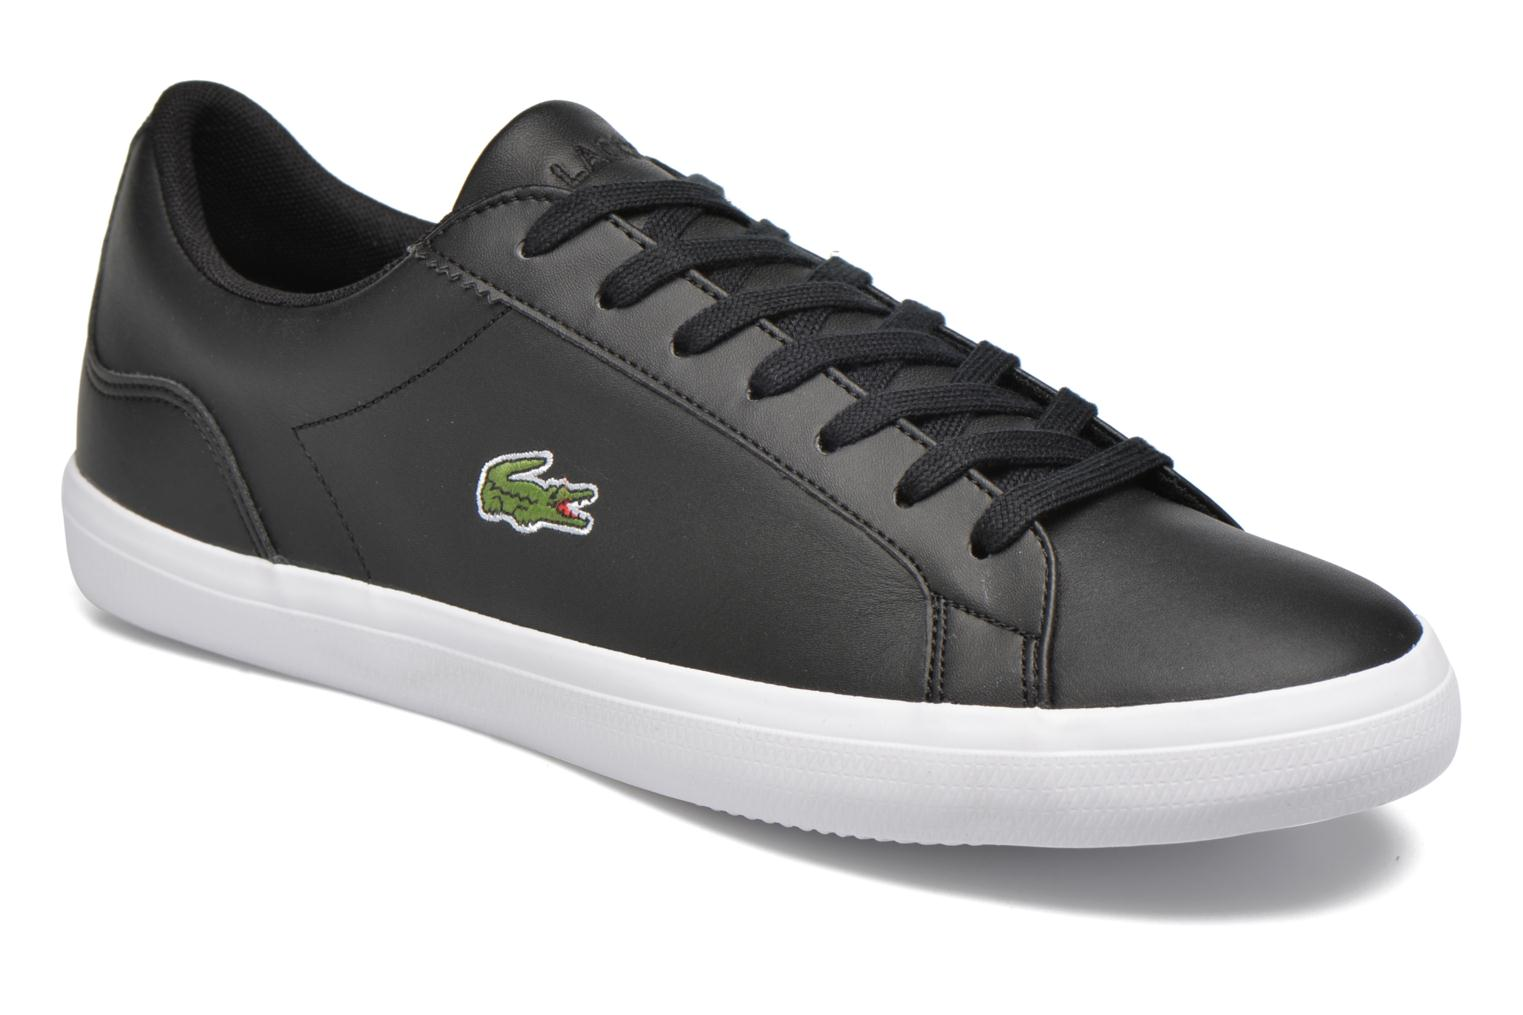 sneakers-lerond-bl-1-by-lacoste